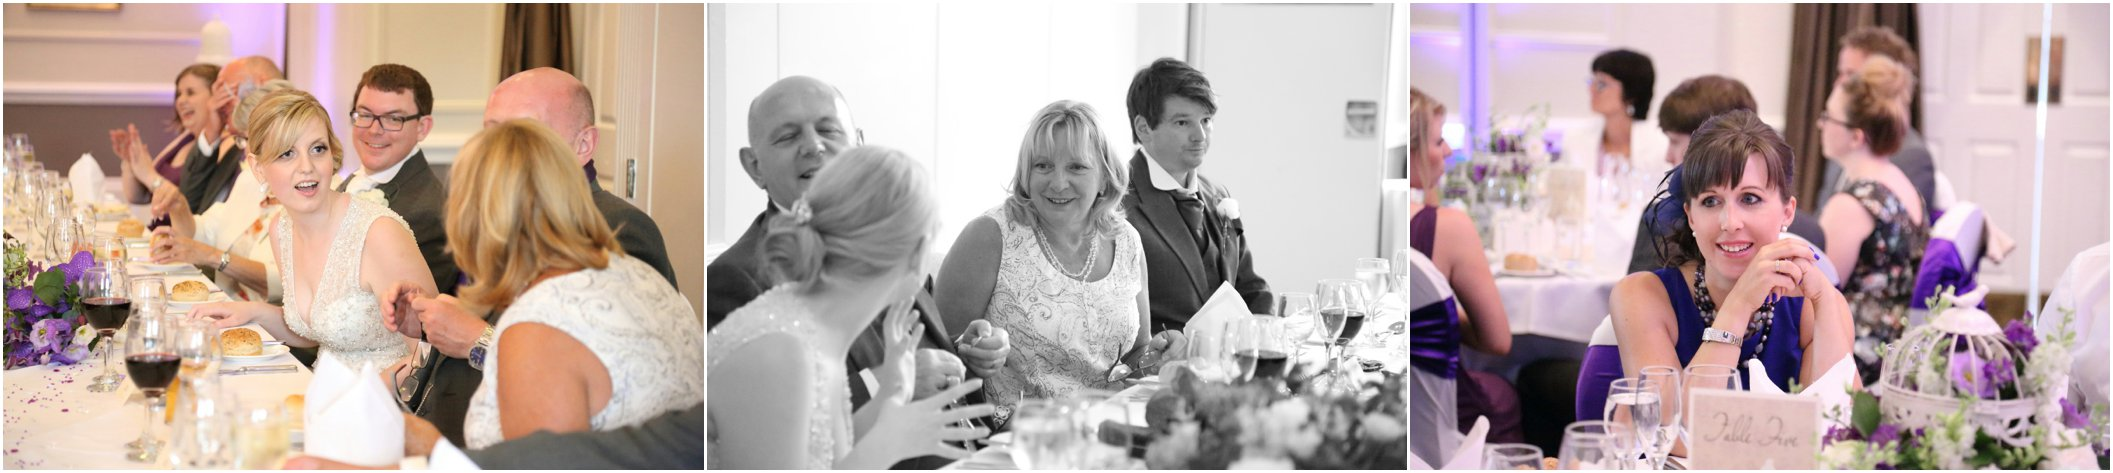 bedford-lodge-wedding-photography-newmarket_0020